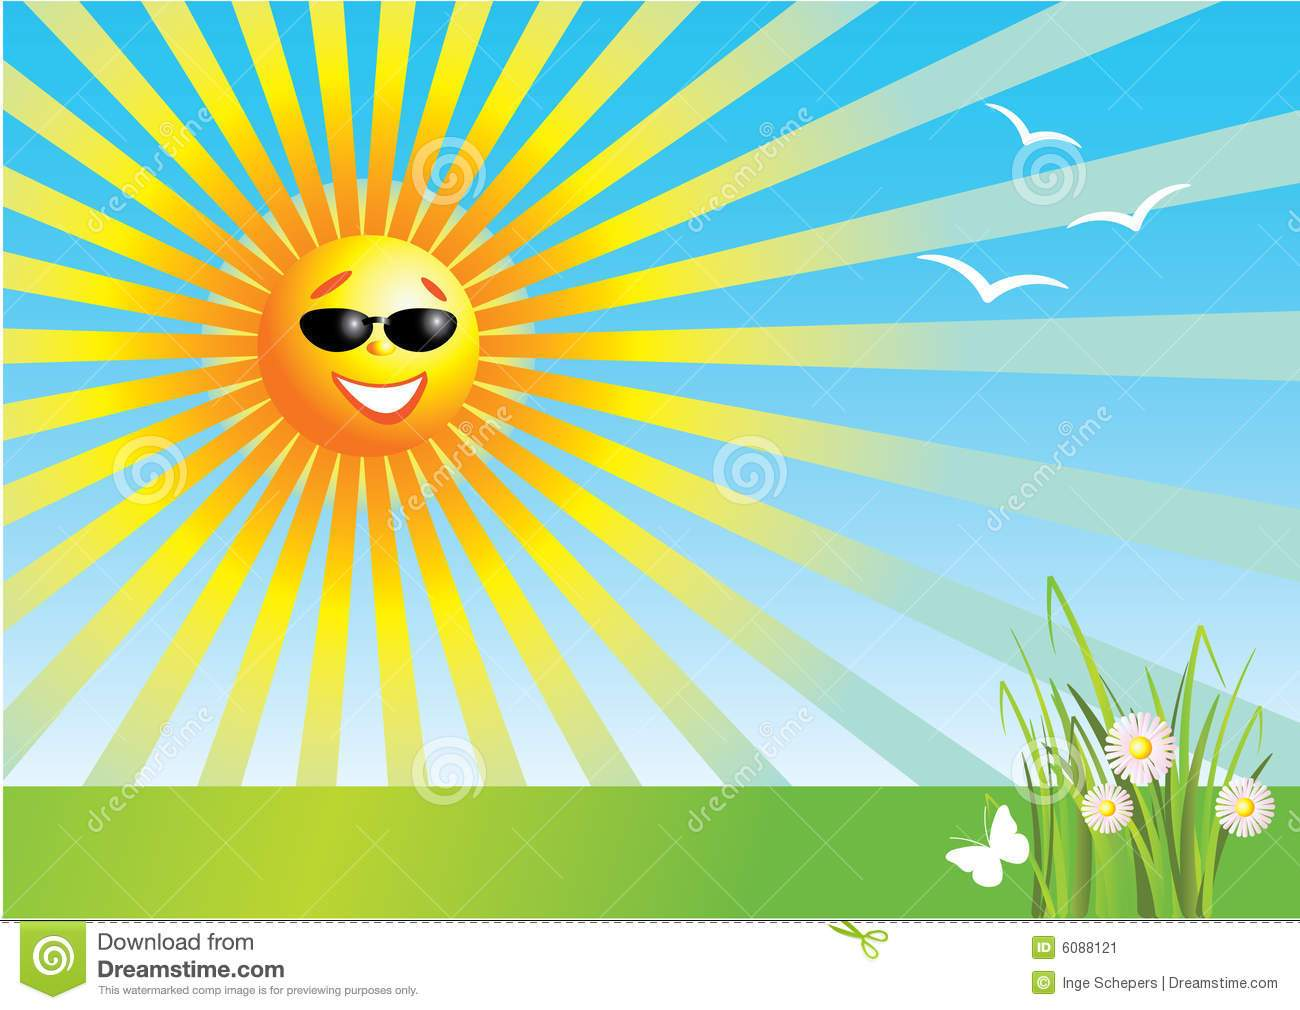 Clipart of sunny day 1 » Clipart Portal.